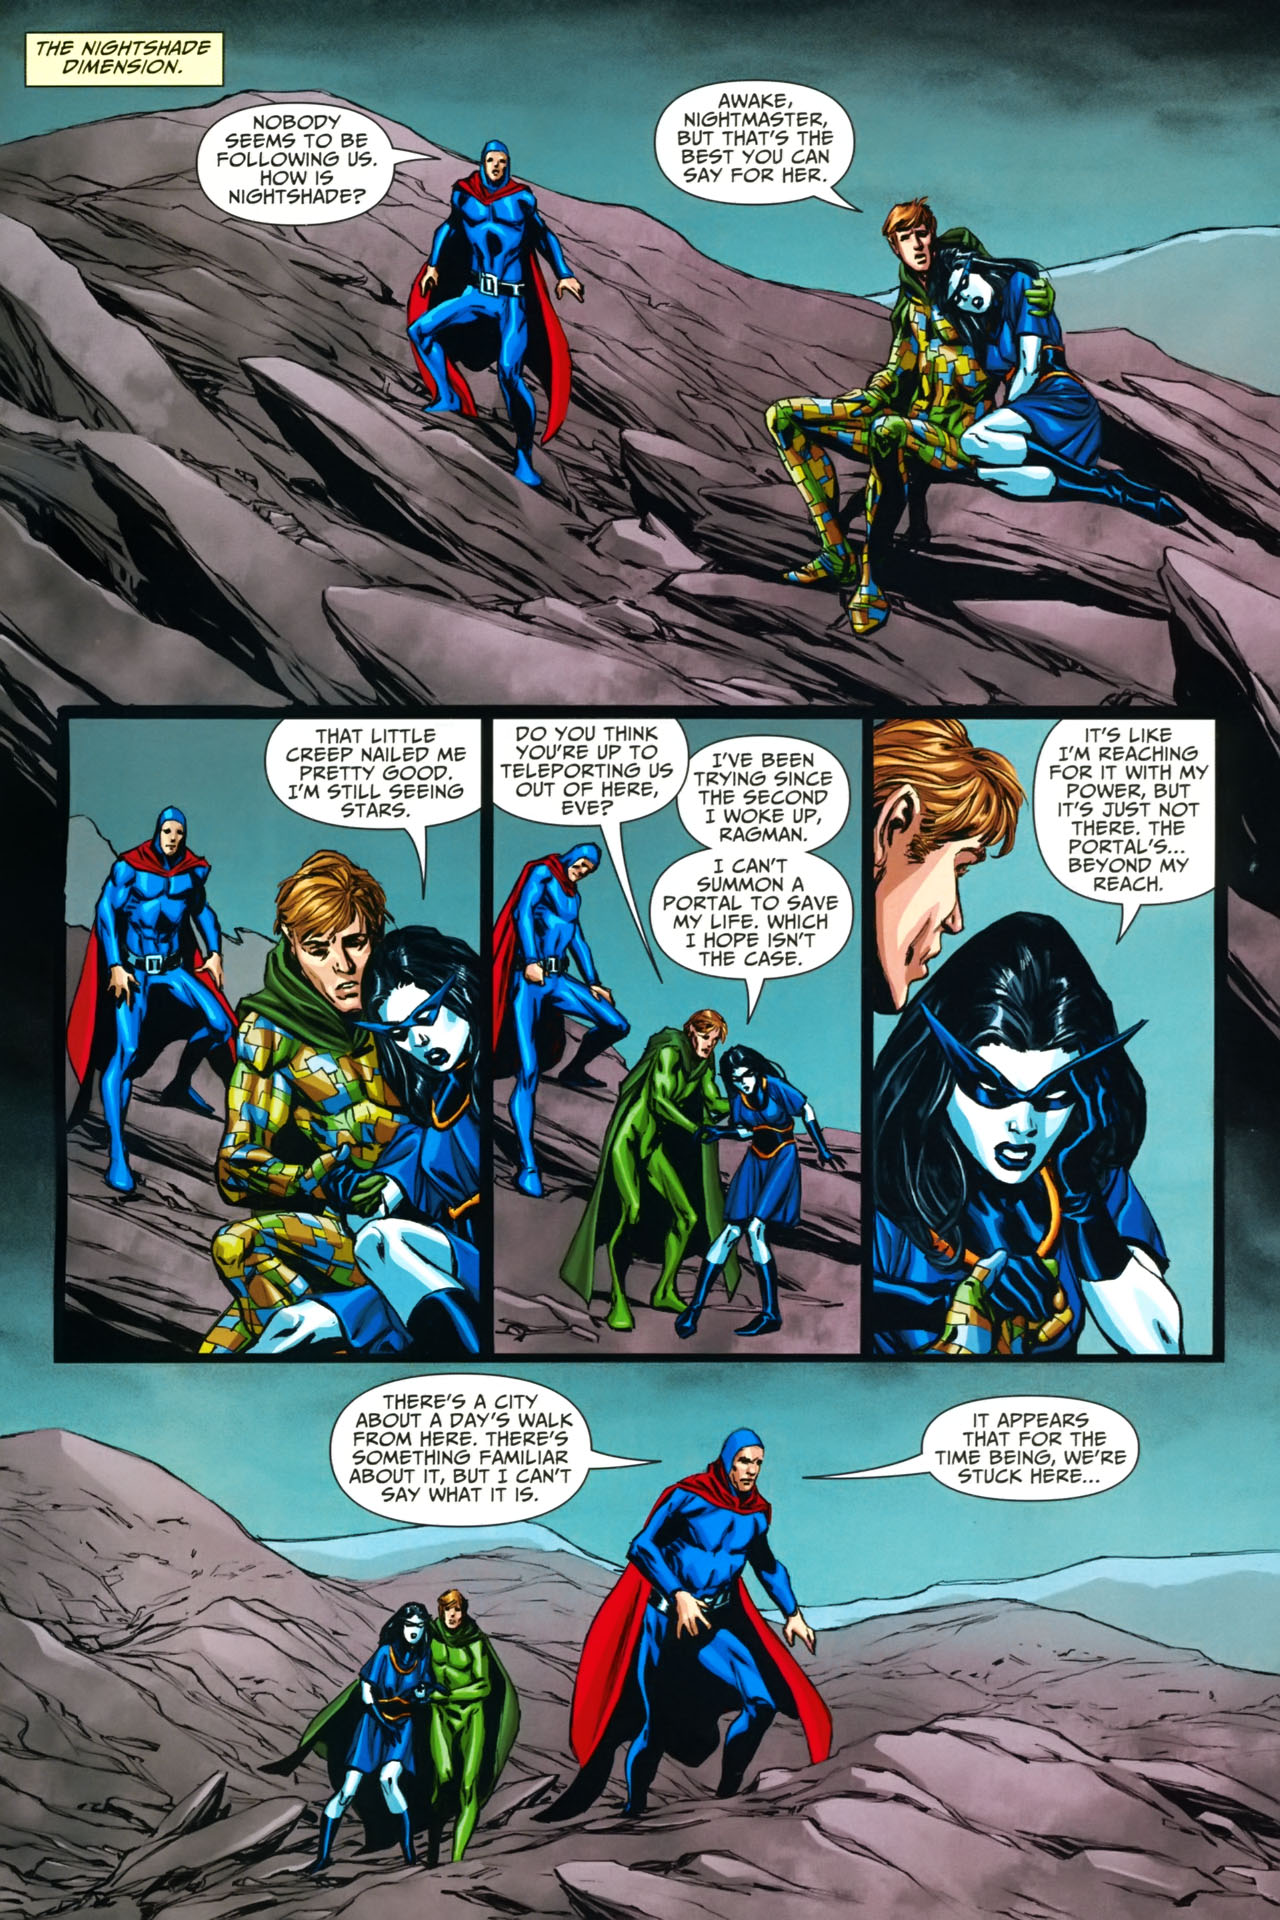 Read online Shadowpact comic -  Issue #19 - 22